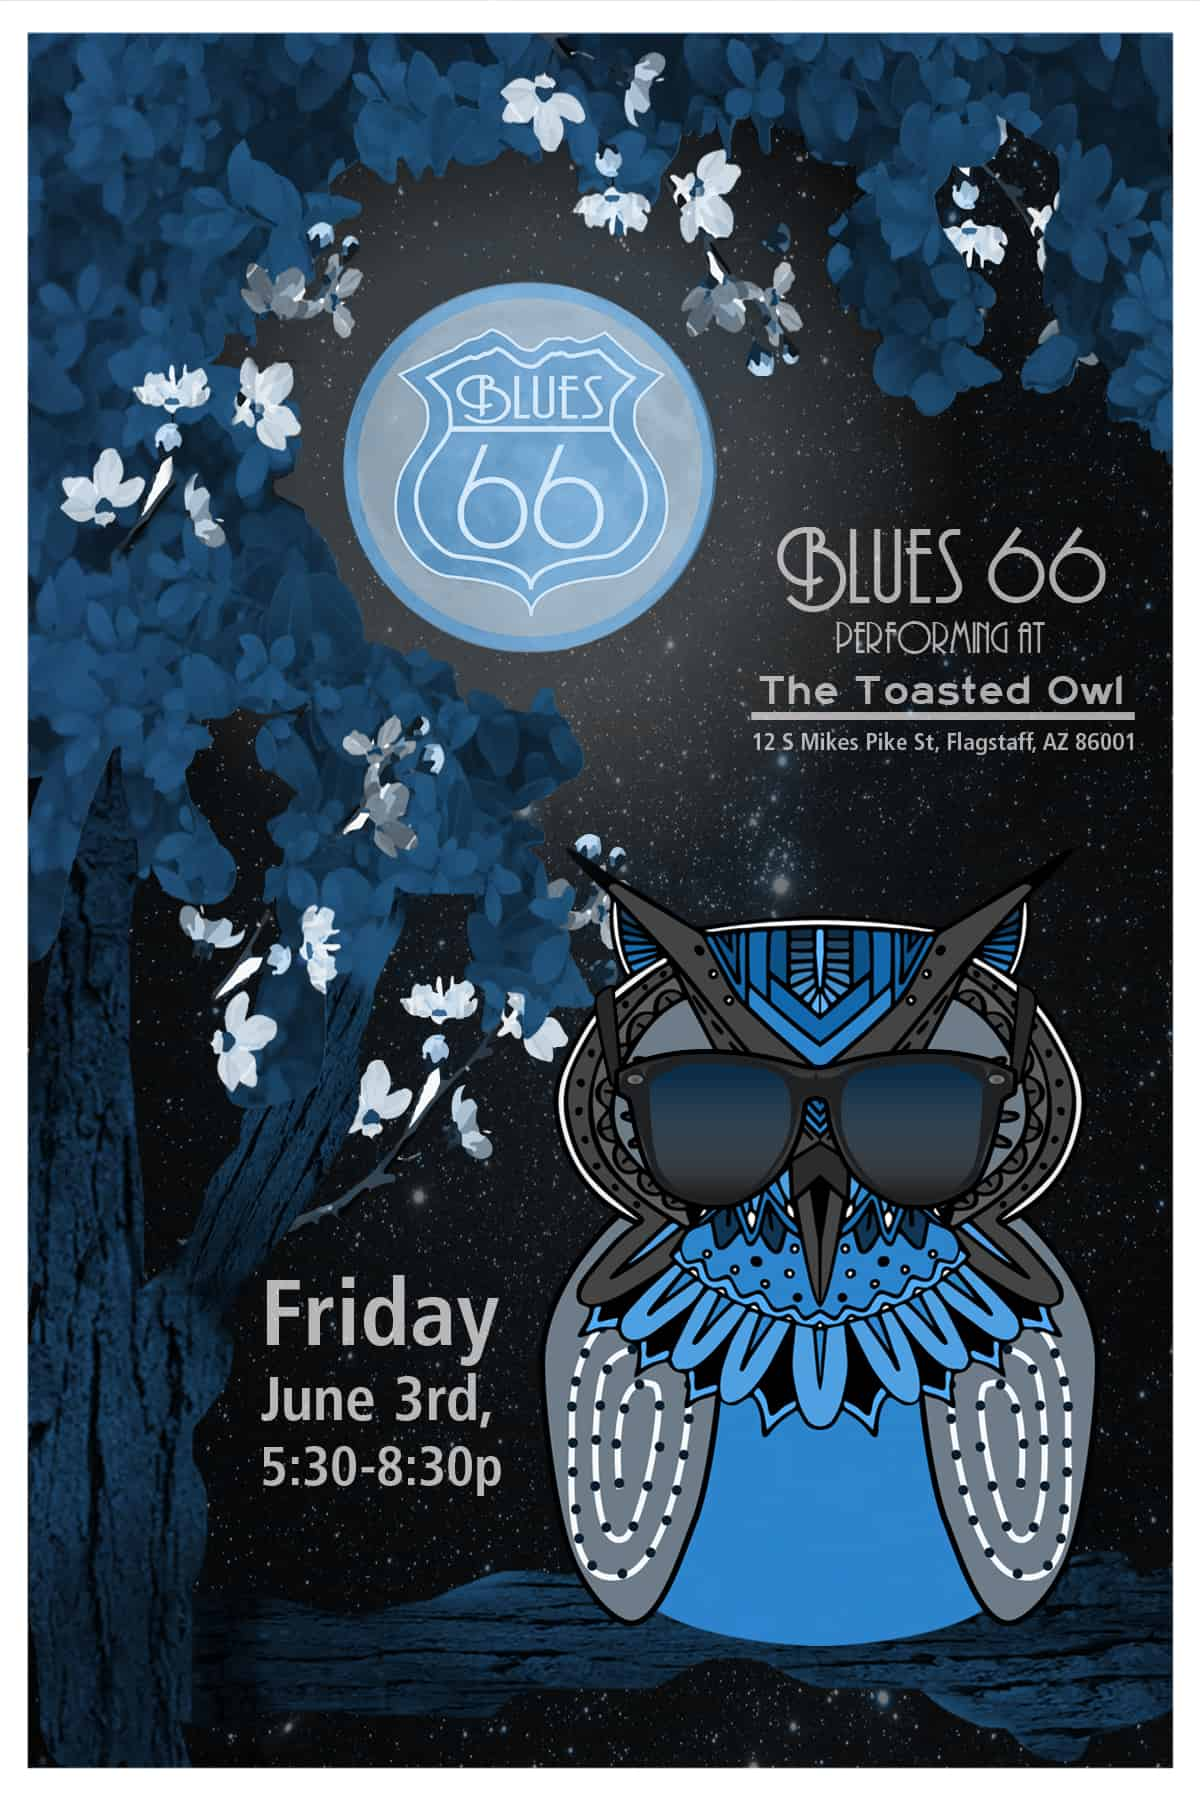 Blues 66 Postcard Toasted Owl-June 2016 (blue)